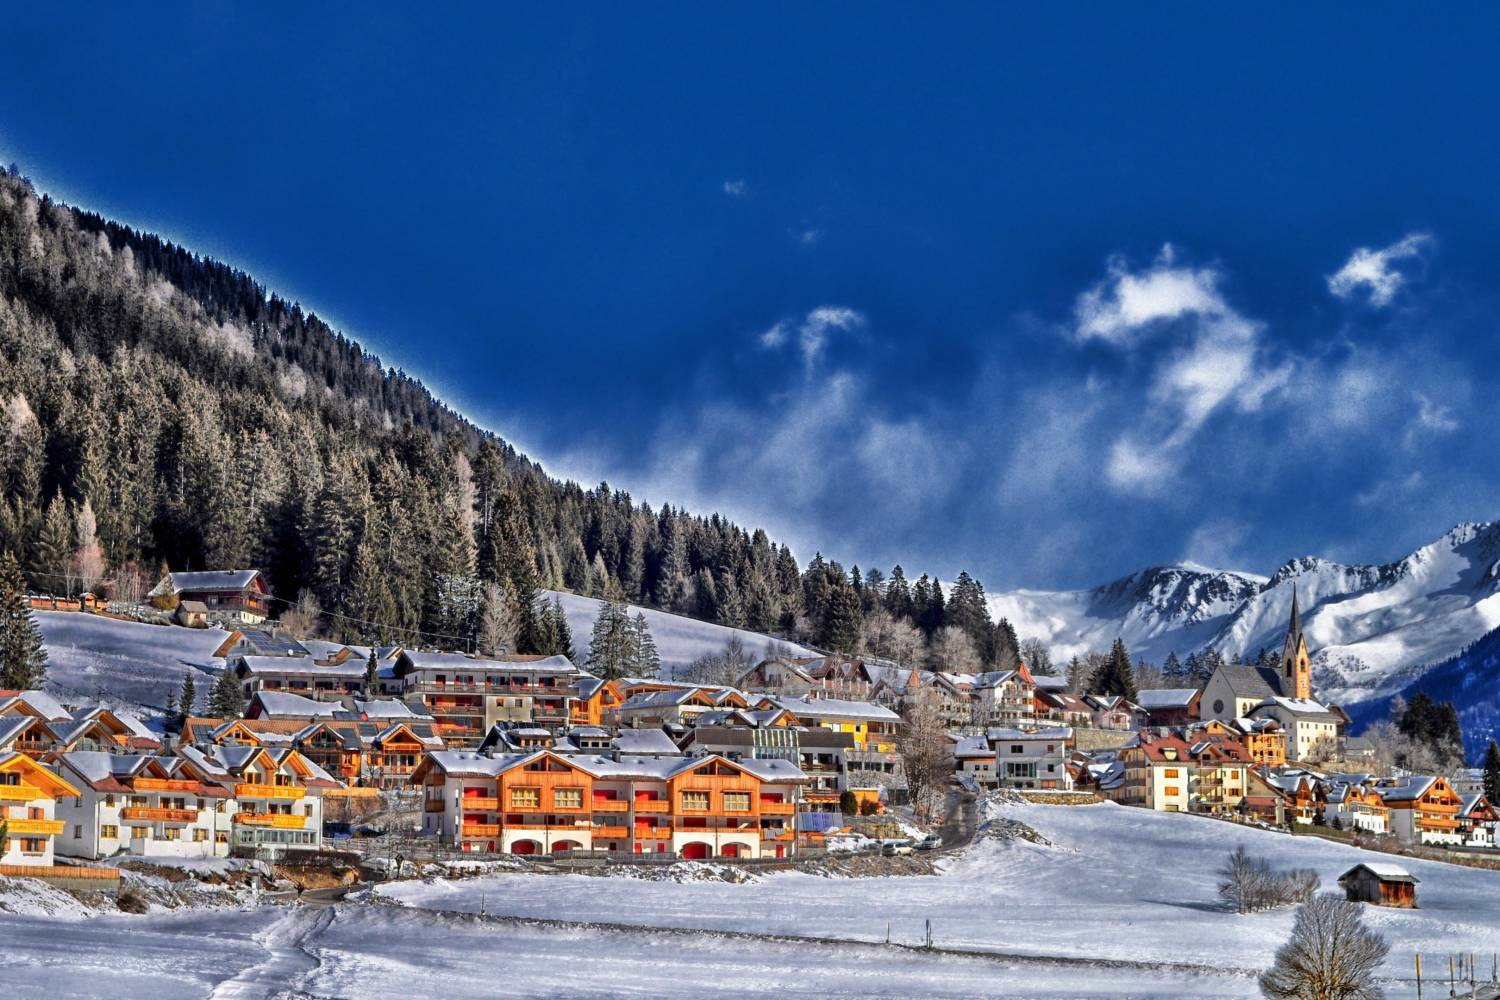 Enjoy a private chef after an amazing ski day in Courchevel - Take a Chef